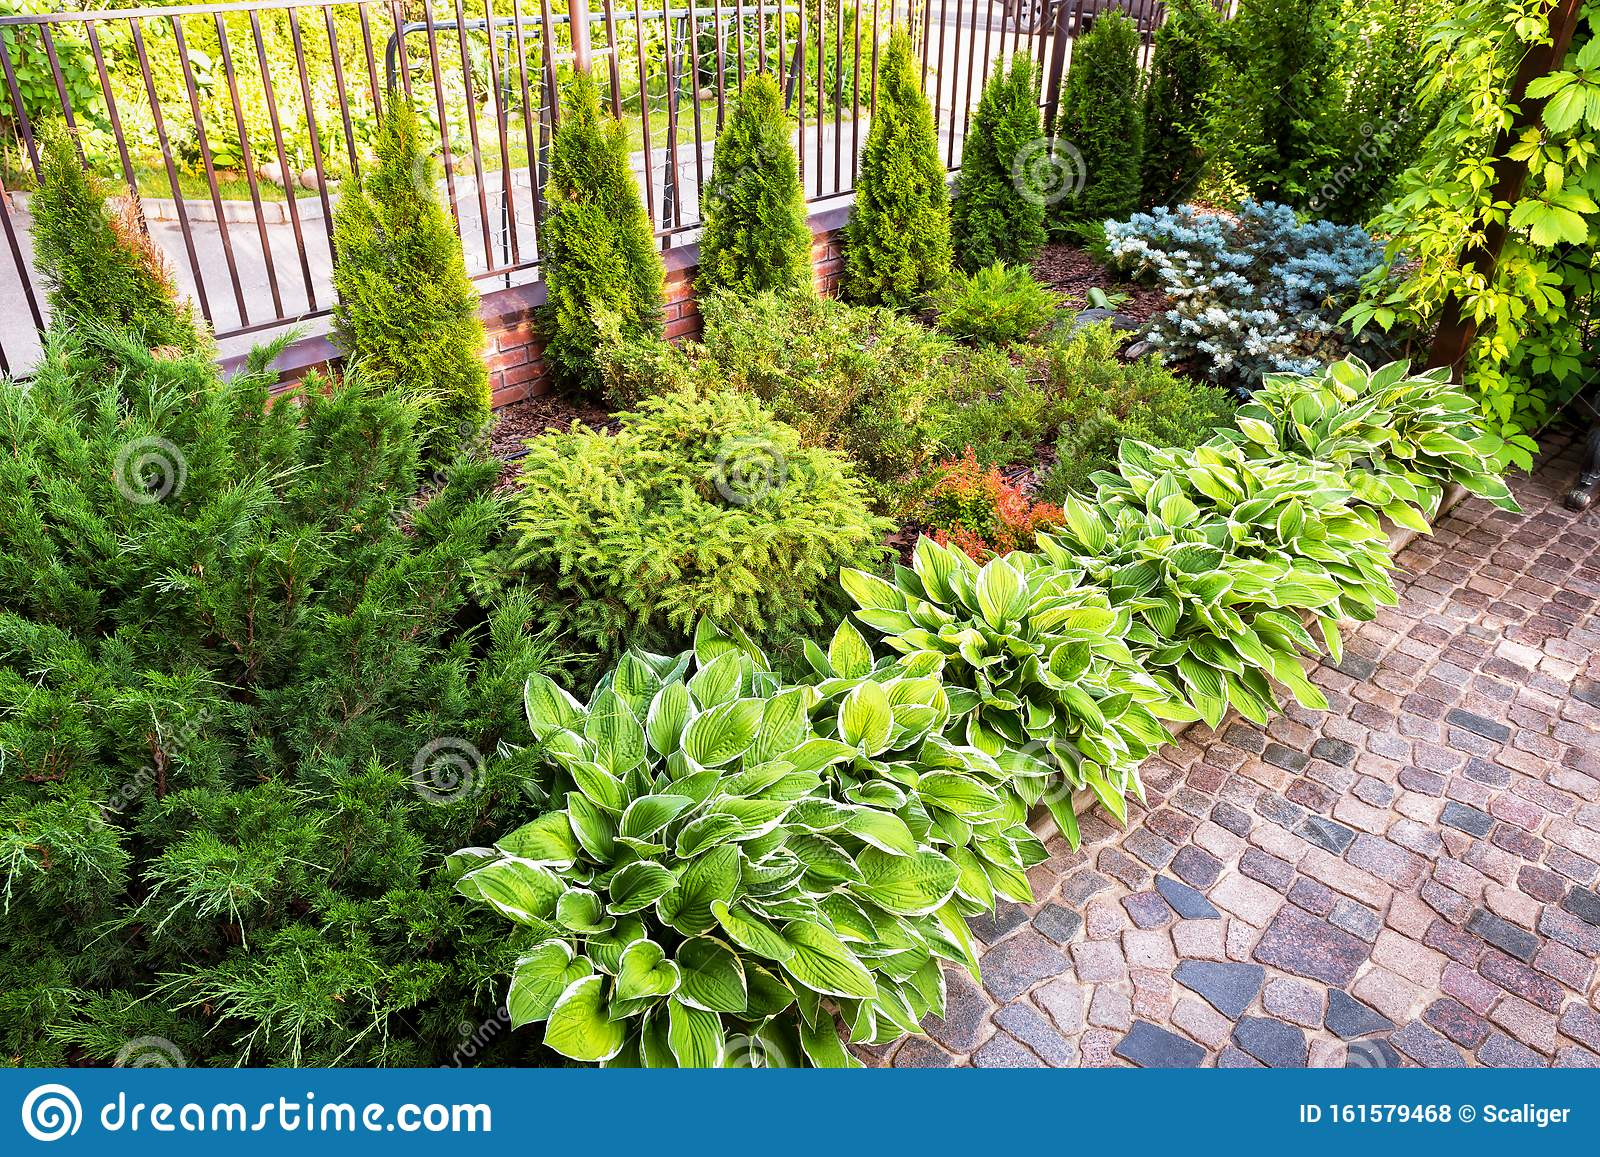 Landscaping In Home Garden Beautiful Natural Landscape Design With Flower Beds In Summer Stock Photo Image Of Garden Landscaping 161579468